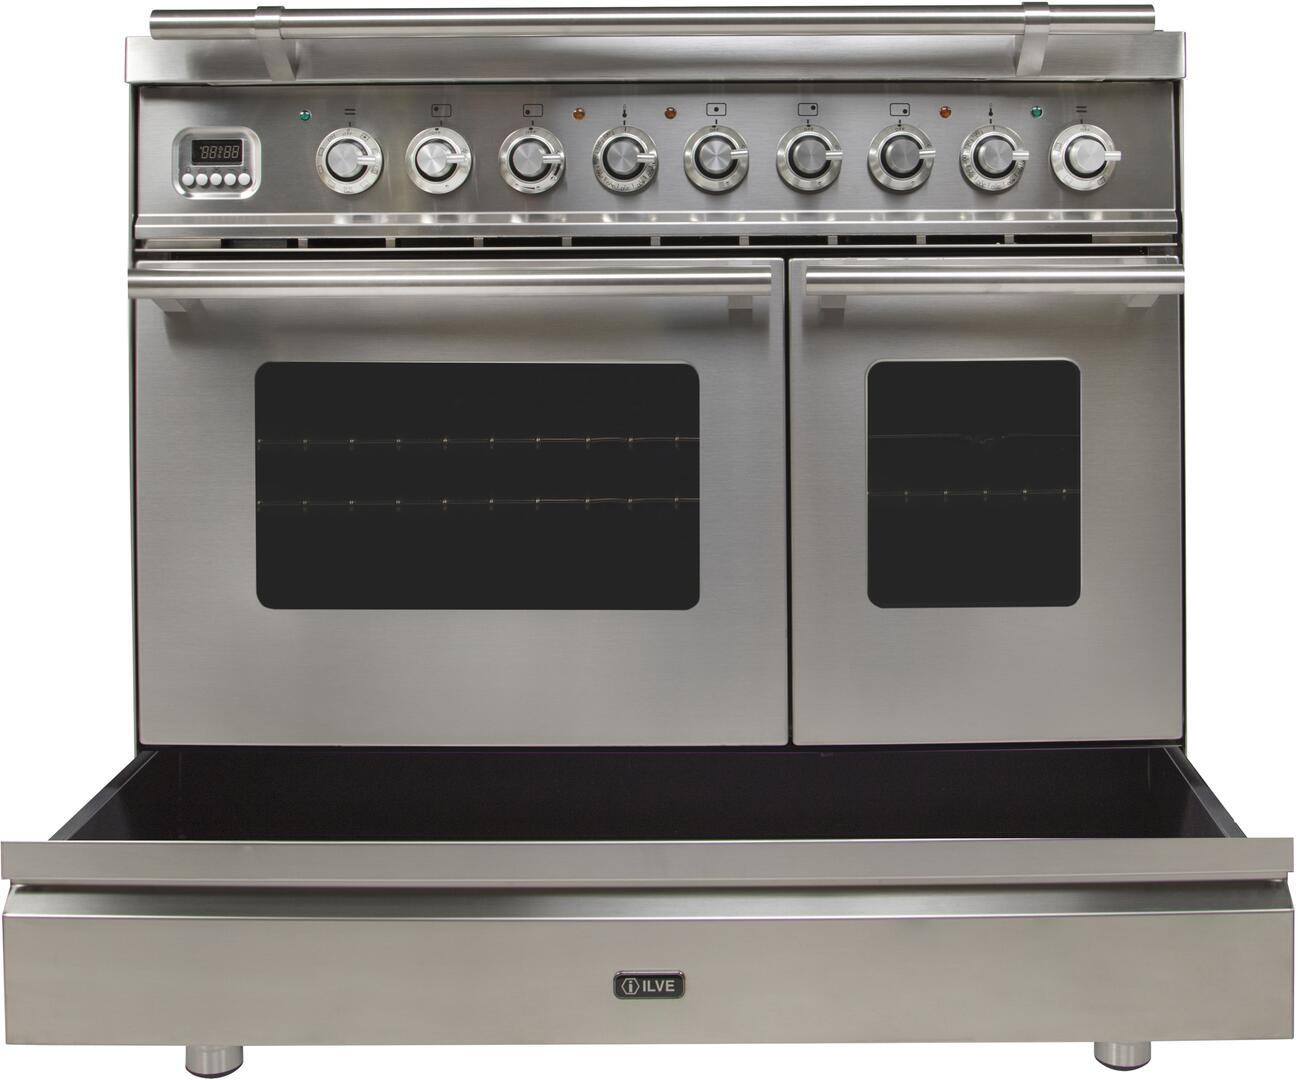 Ilve Professional Plus UPDW90FDMPI Freestanding Dual Fuel Range Stainless Steel, Storage Drawer Opened